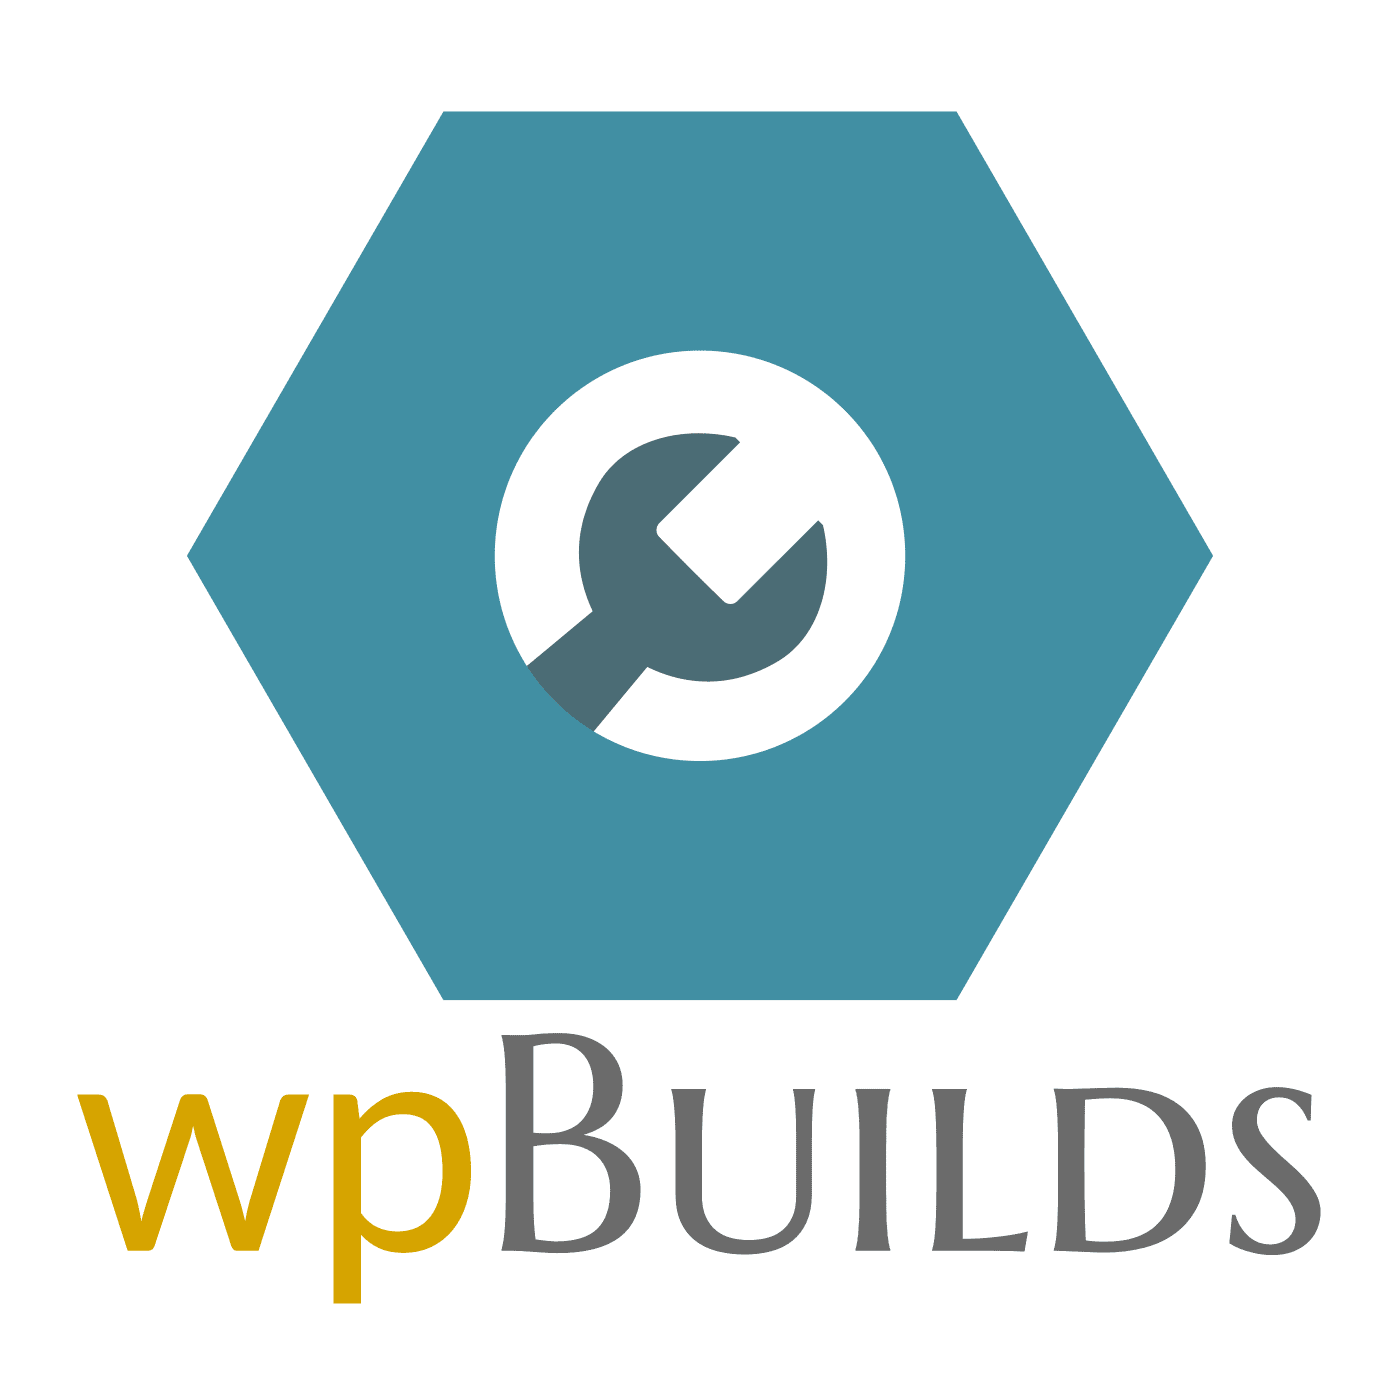 WP Builds